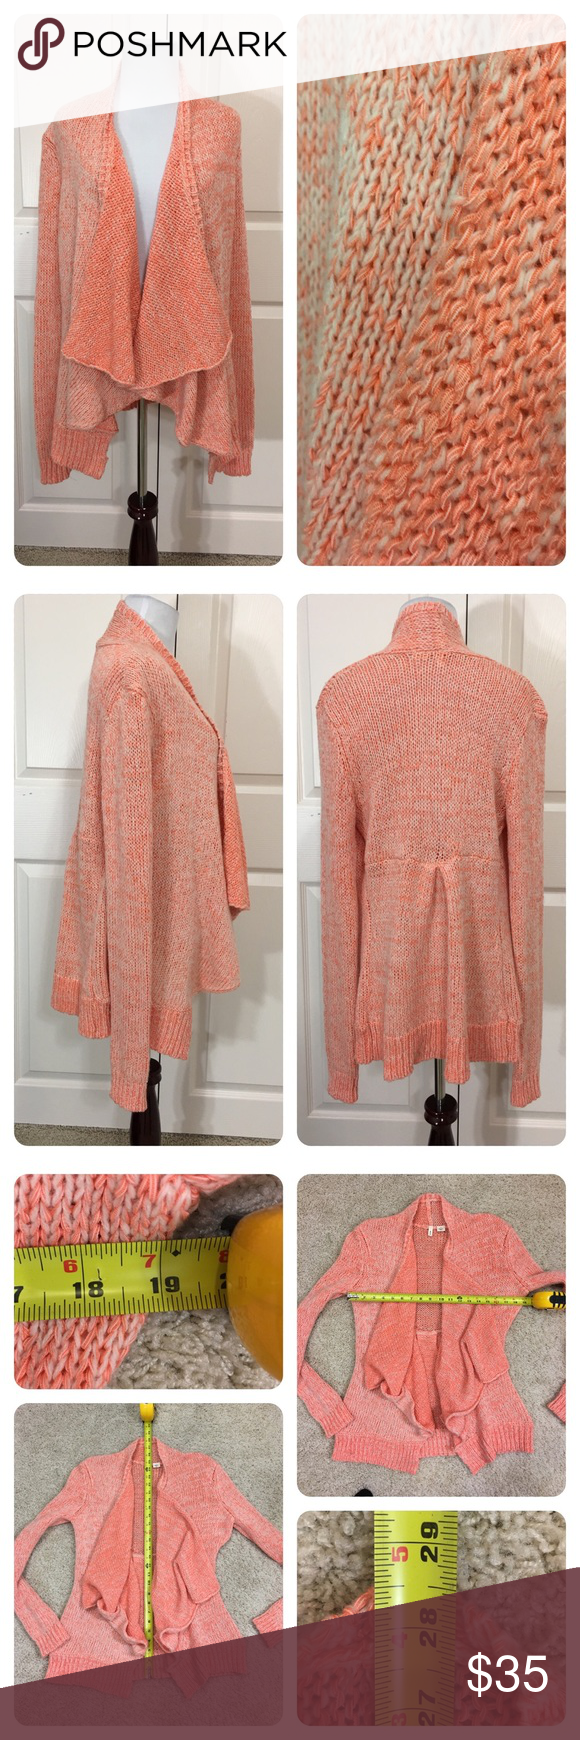 Anthropologie Moth waterfall cardigan | Moth, Anthropologie and Flaws